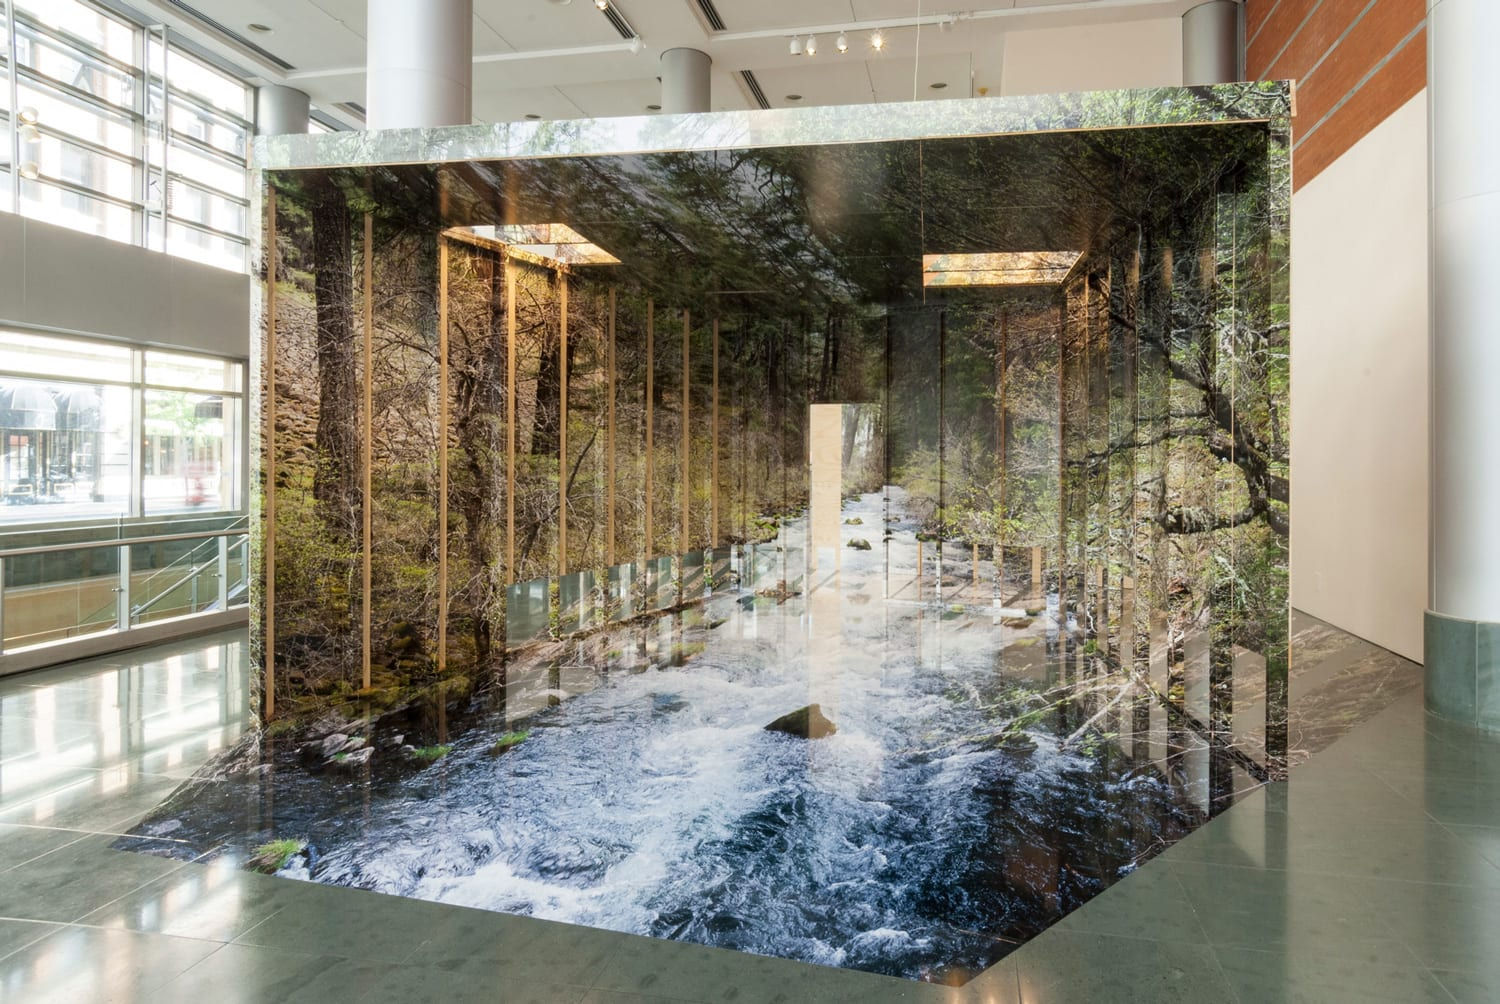 Chris Engman's Dazzling Installations & Photographic Illusions | Yellowtrace